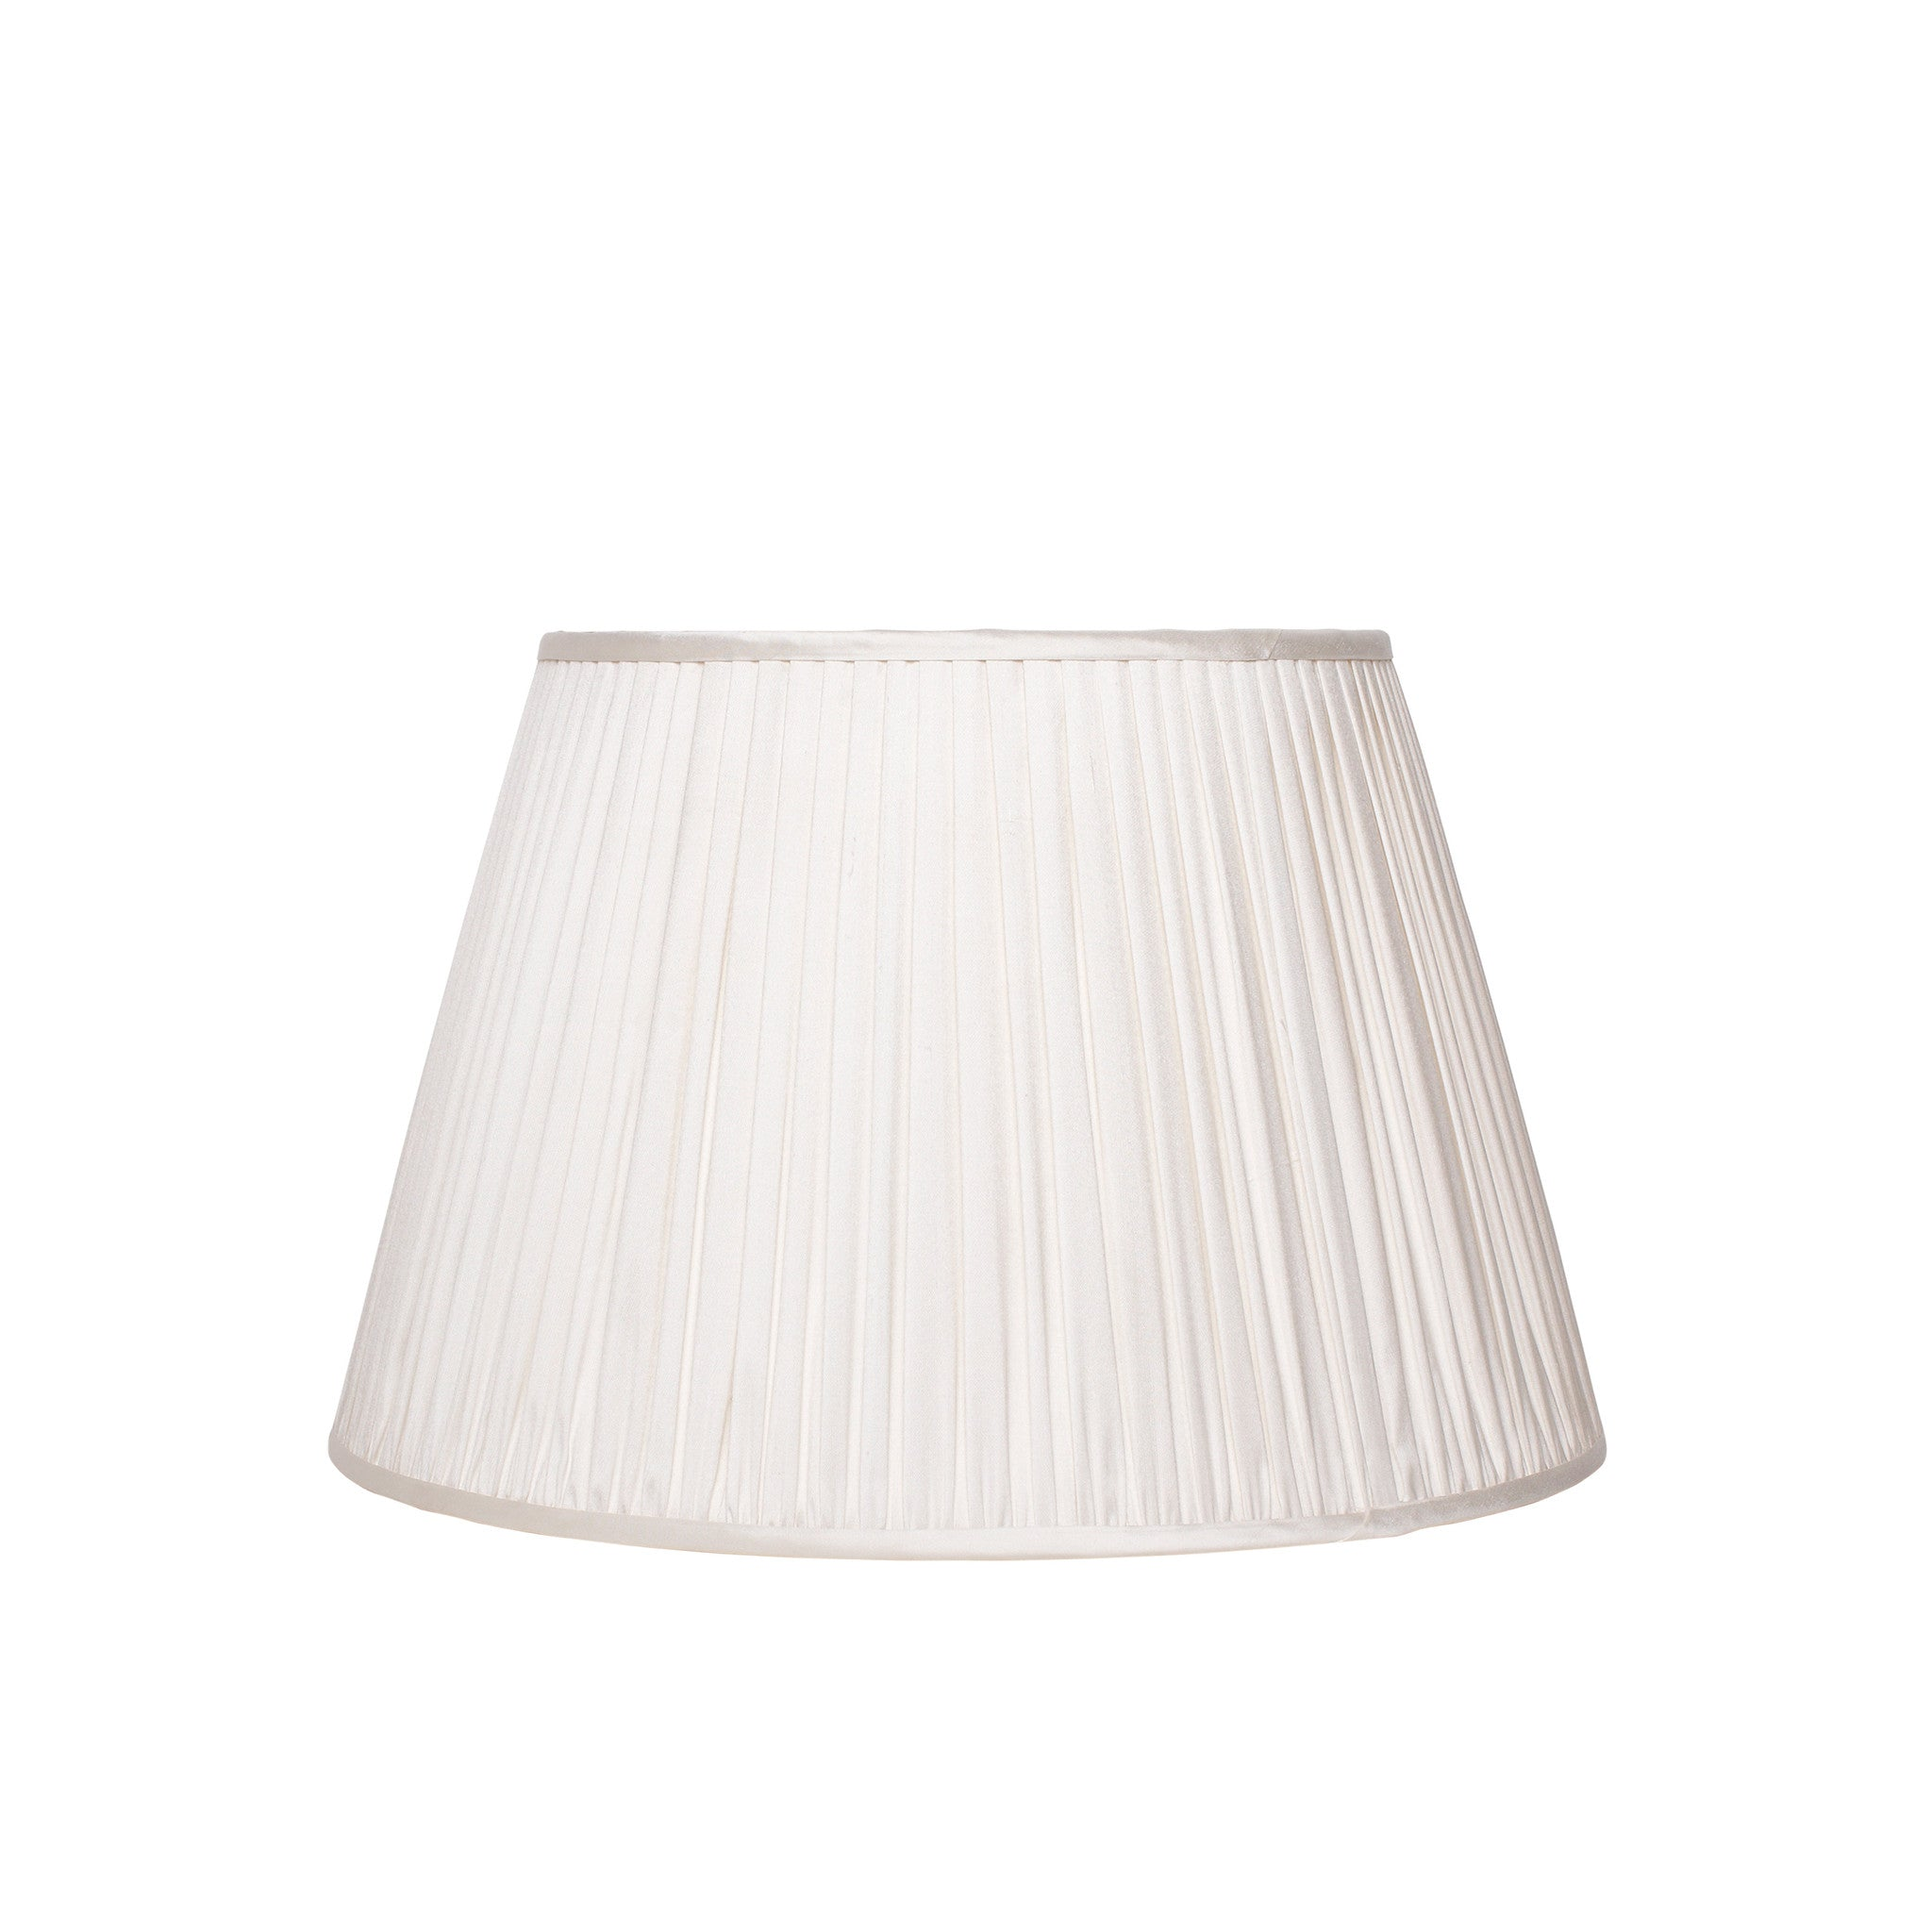 Medium gathered silk lampshade in ivory